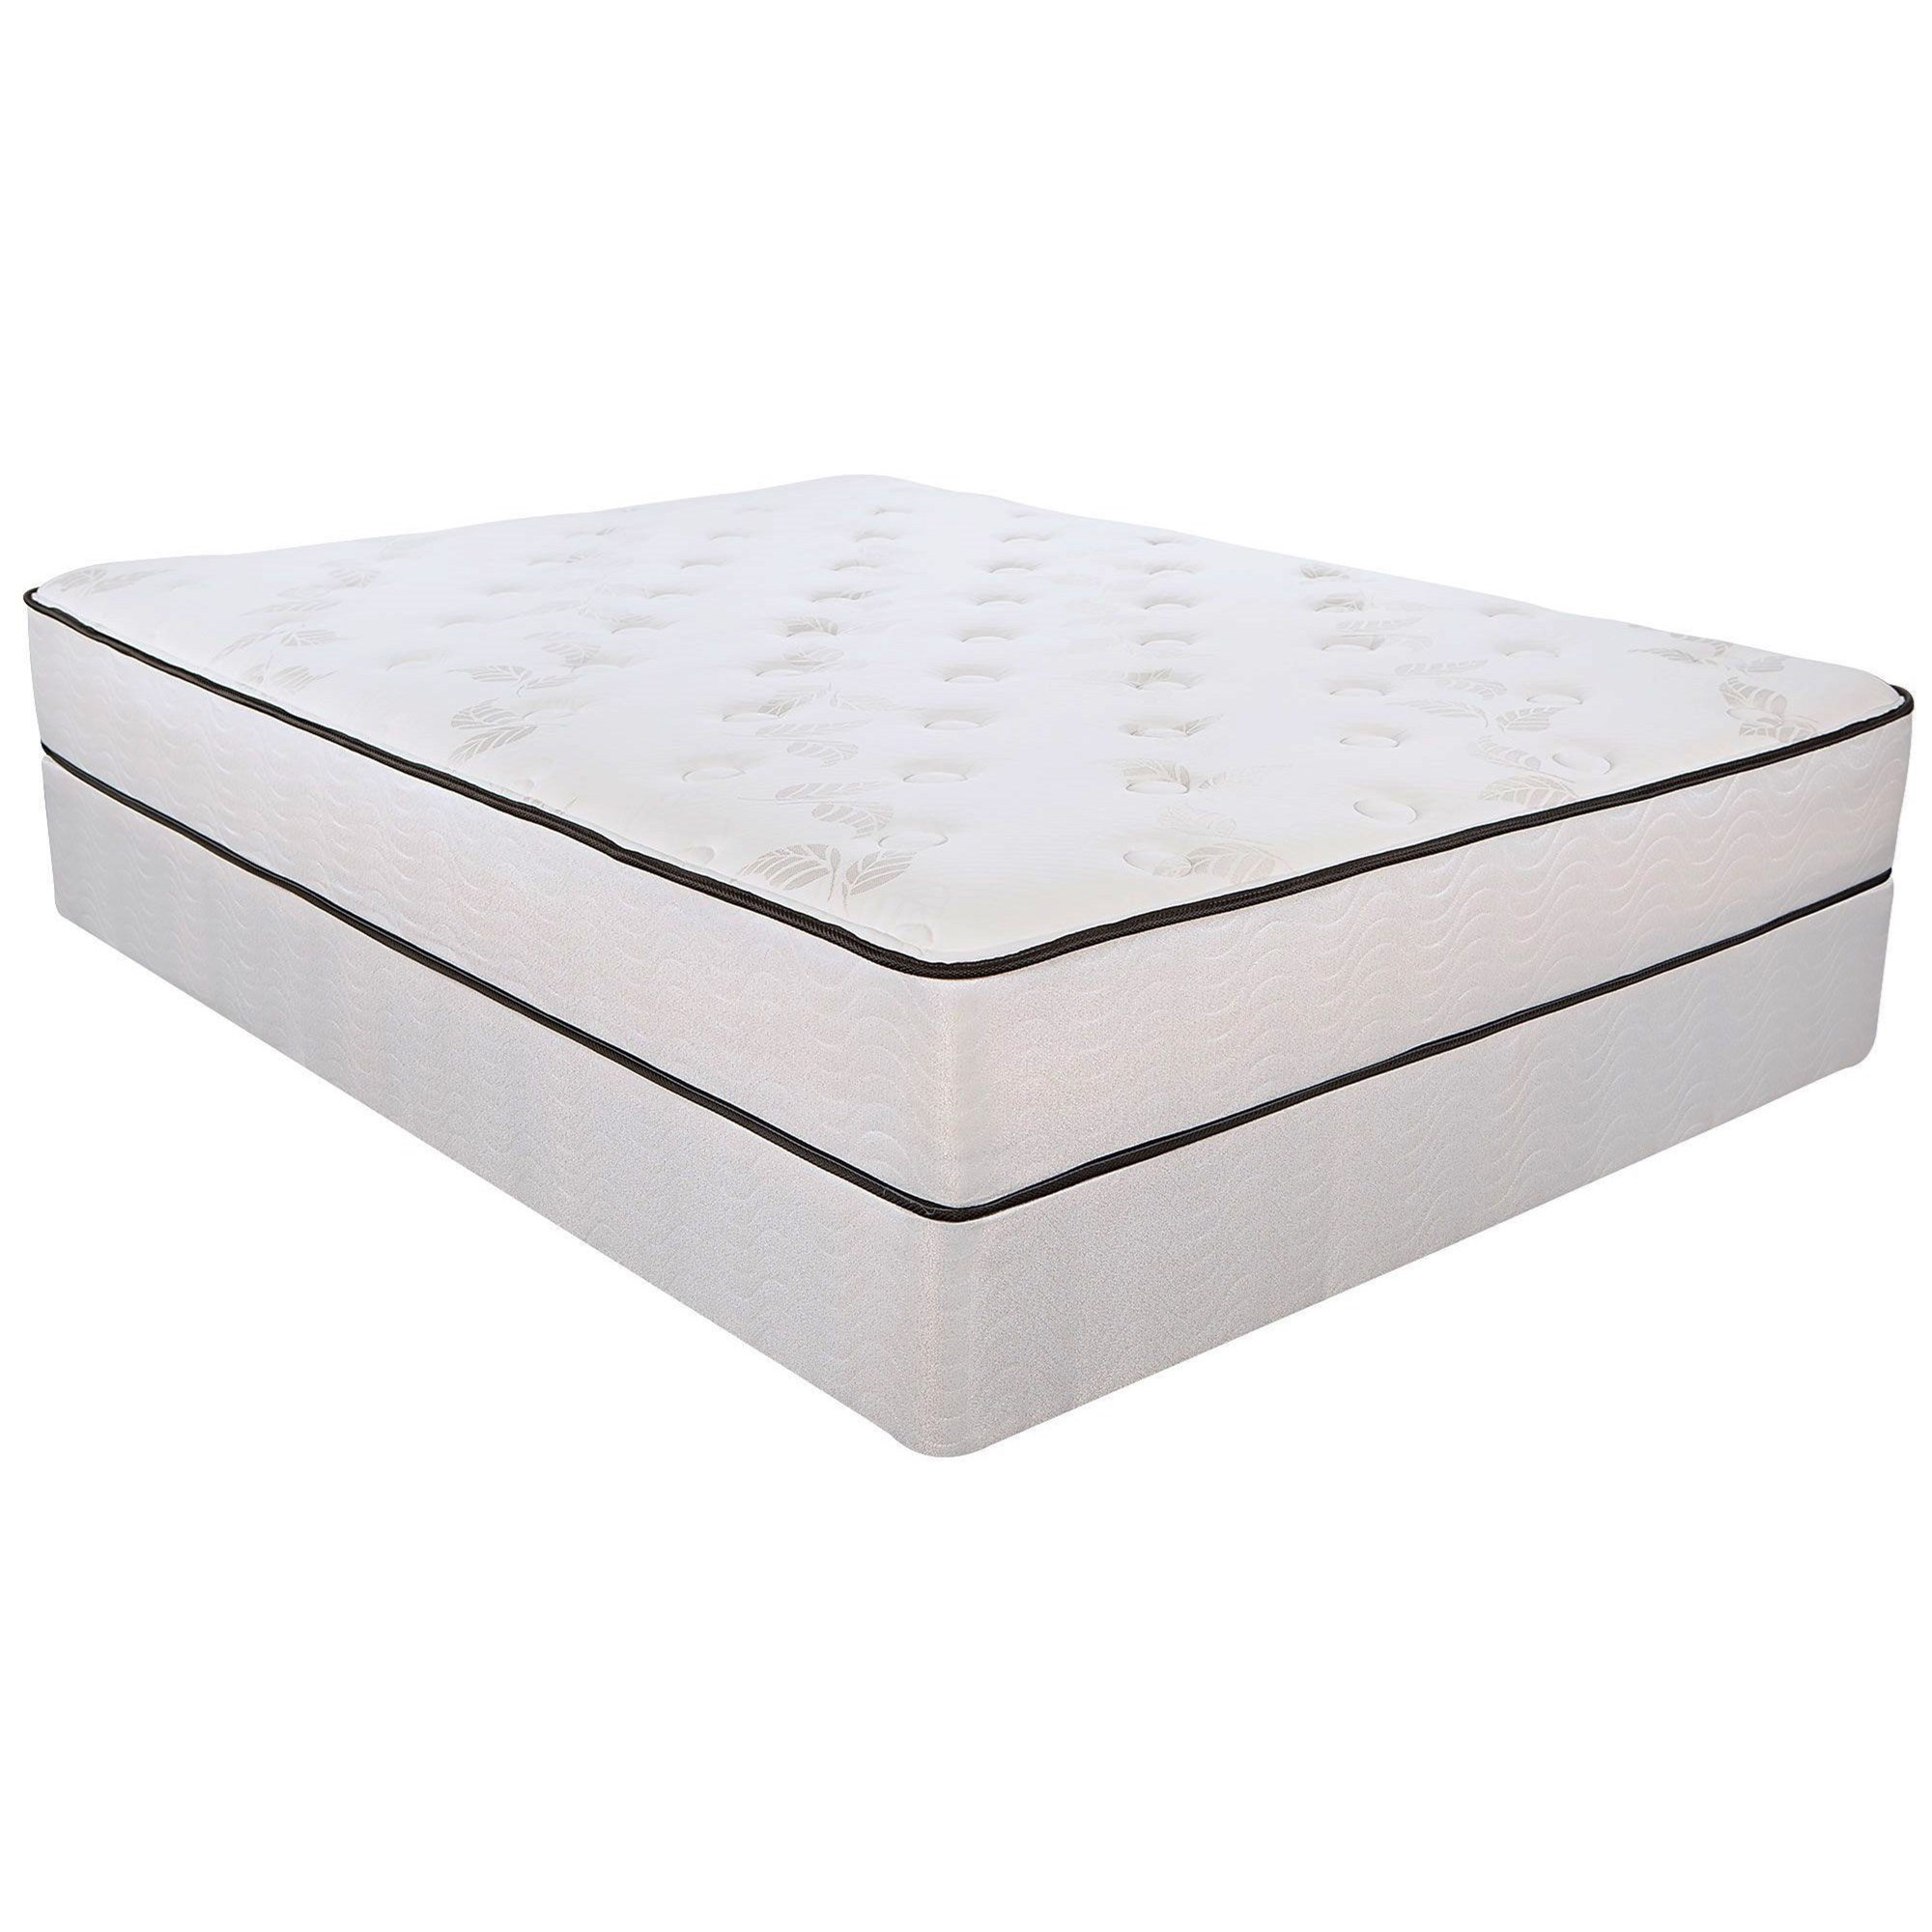 "King 10.9"" Innerspring Mattress Set"